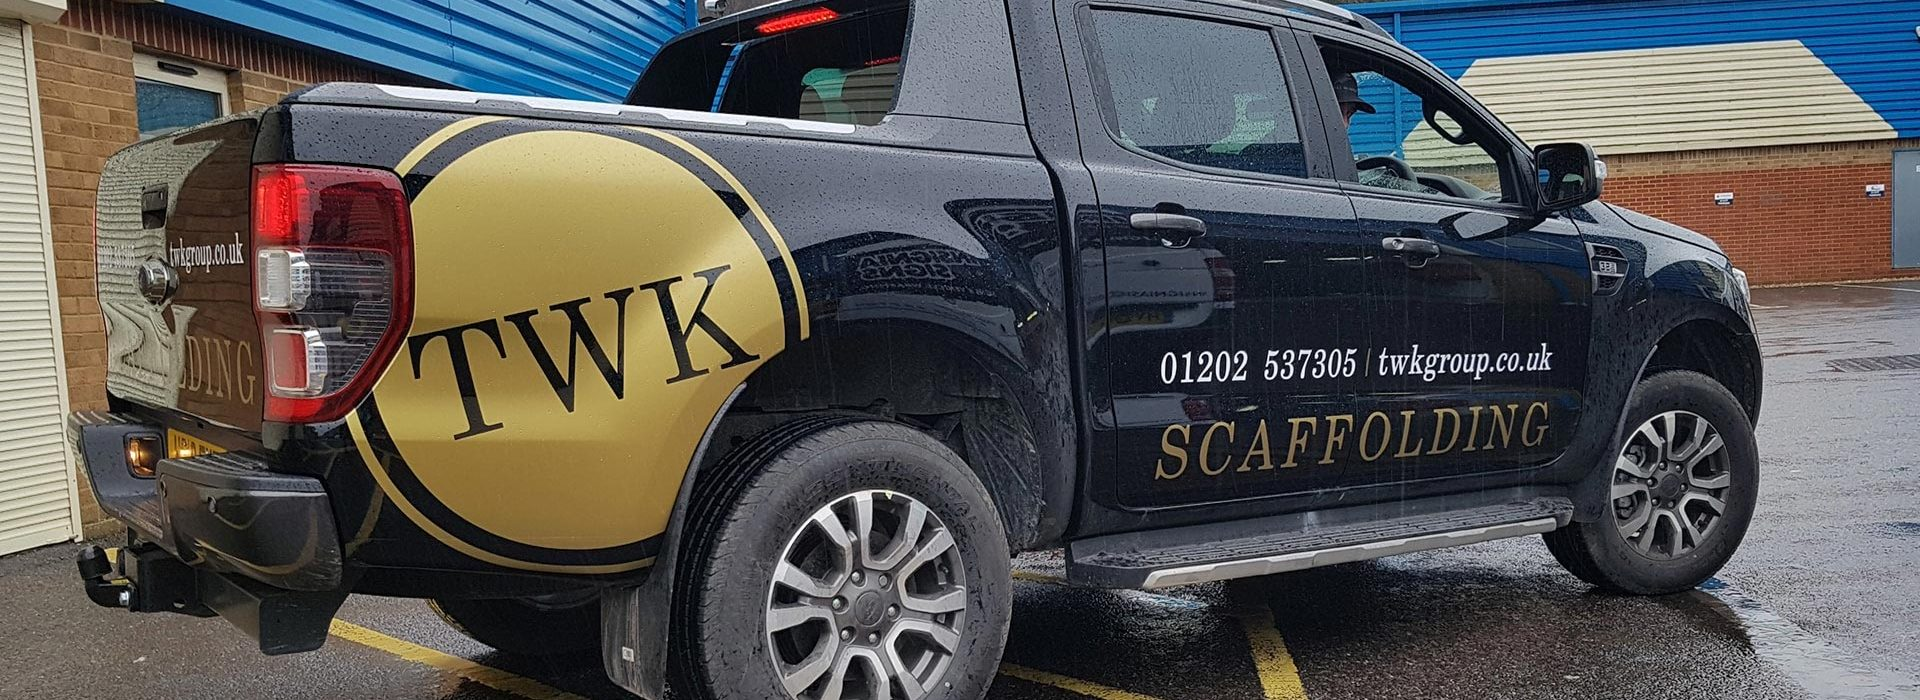 Portfolio - TWK Group Scaffolding Vehicle Wrap - Insignia Signs